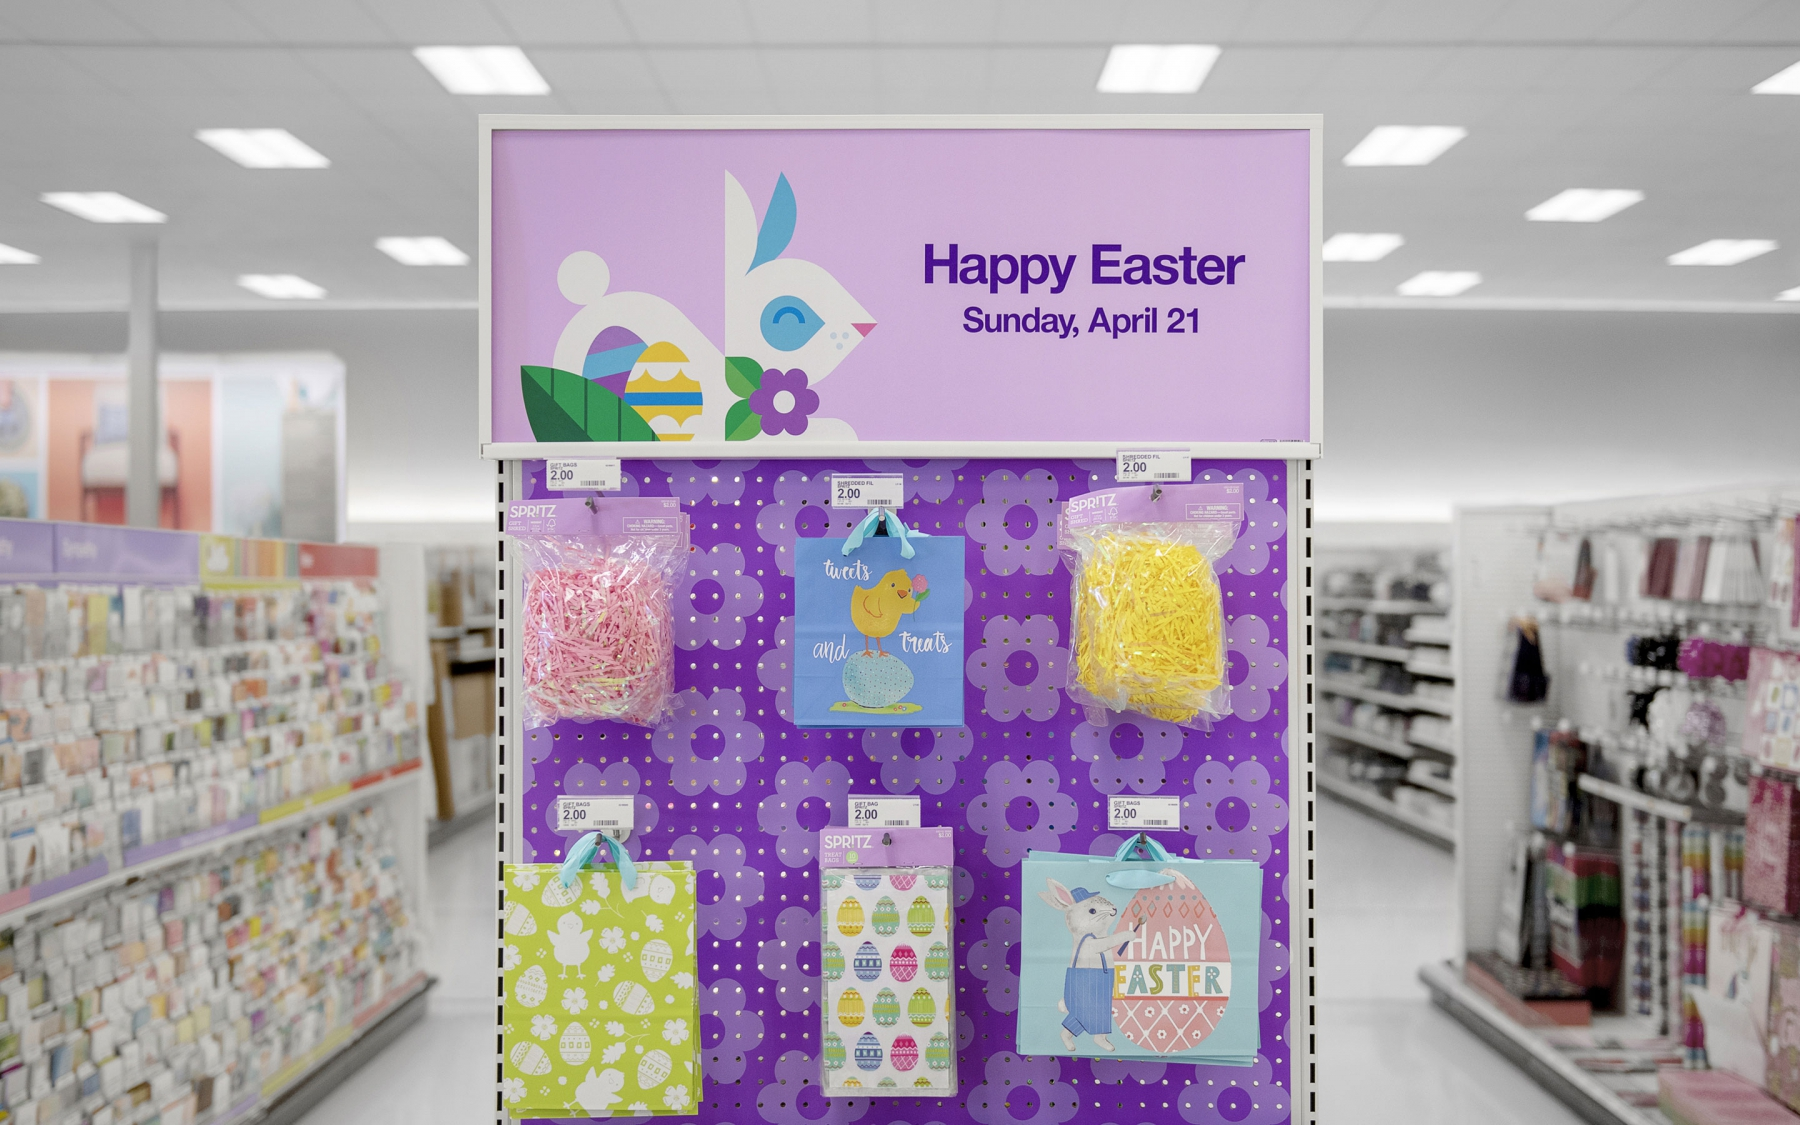 10_Easter1_2680x1600